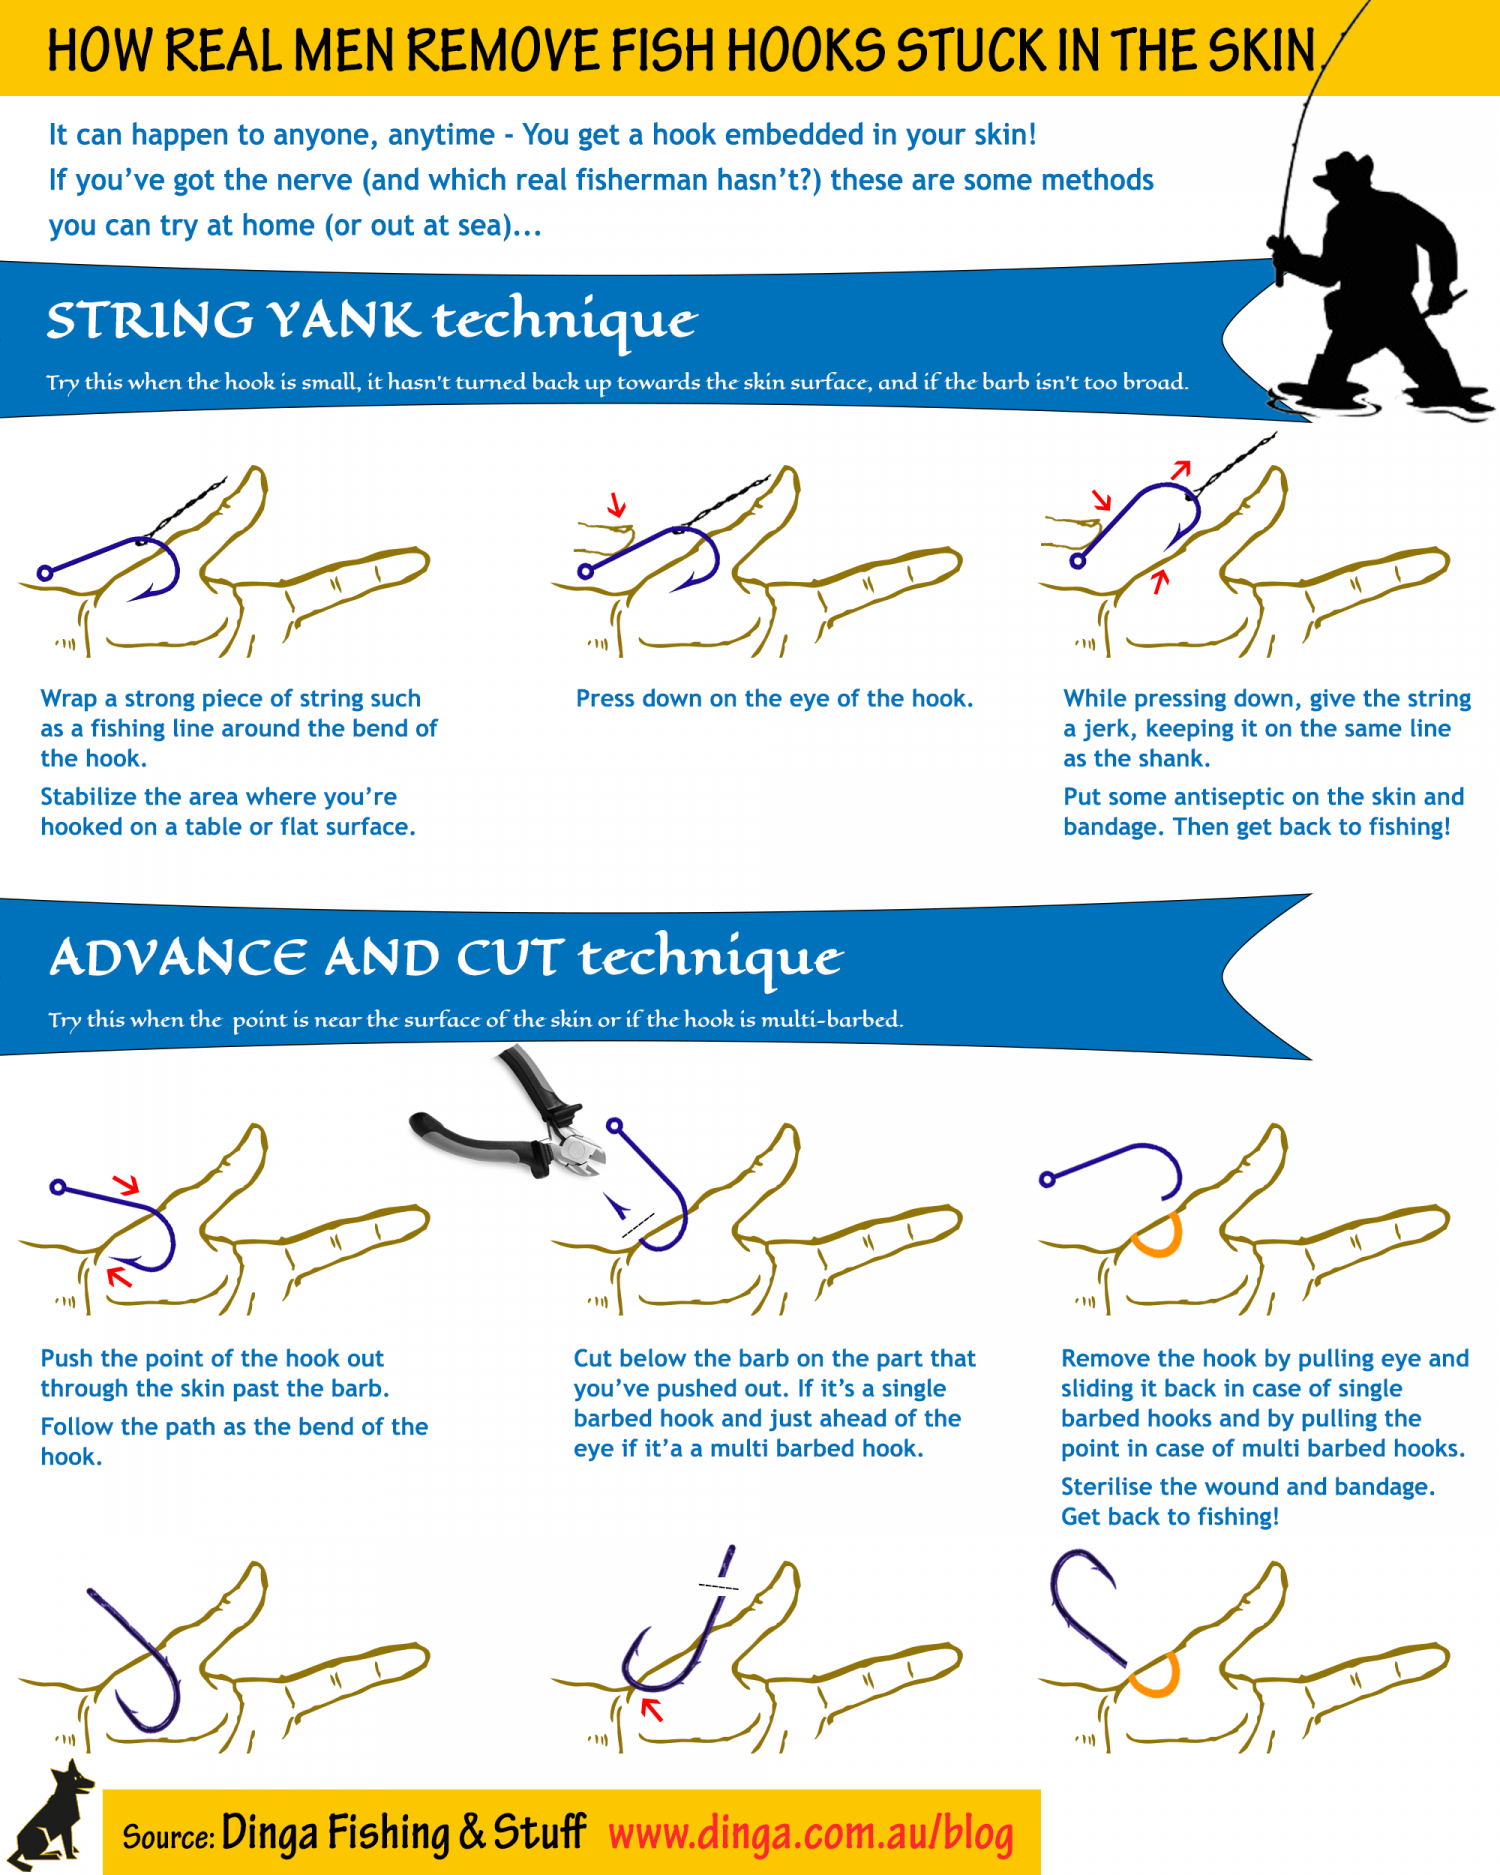 How Real Men Remove Fish Hooks Stuck in the Skin Infographic